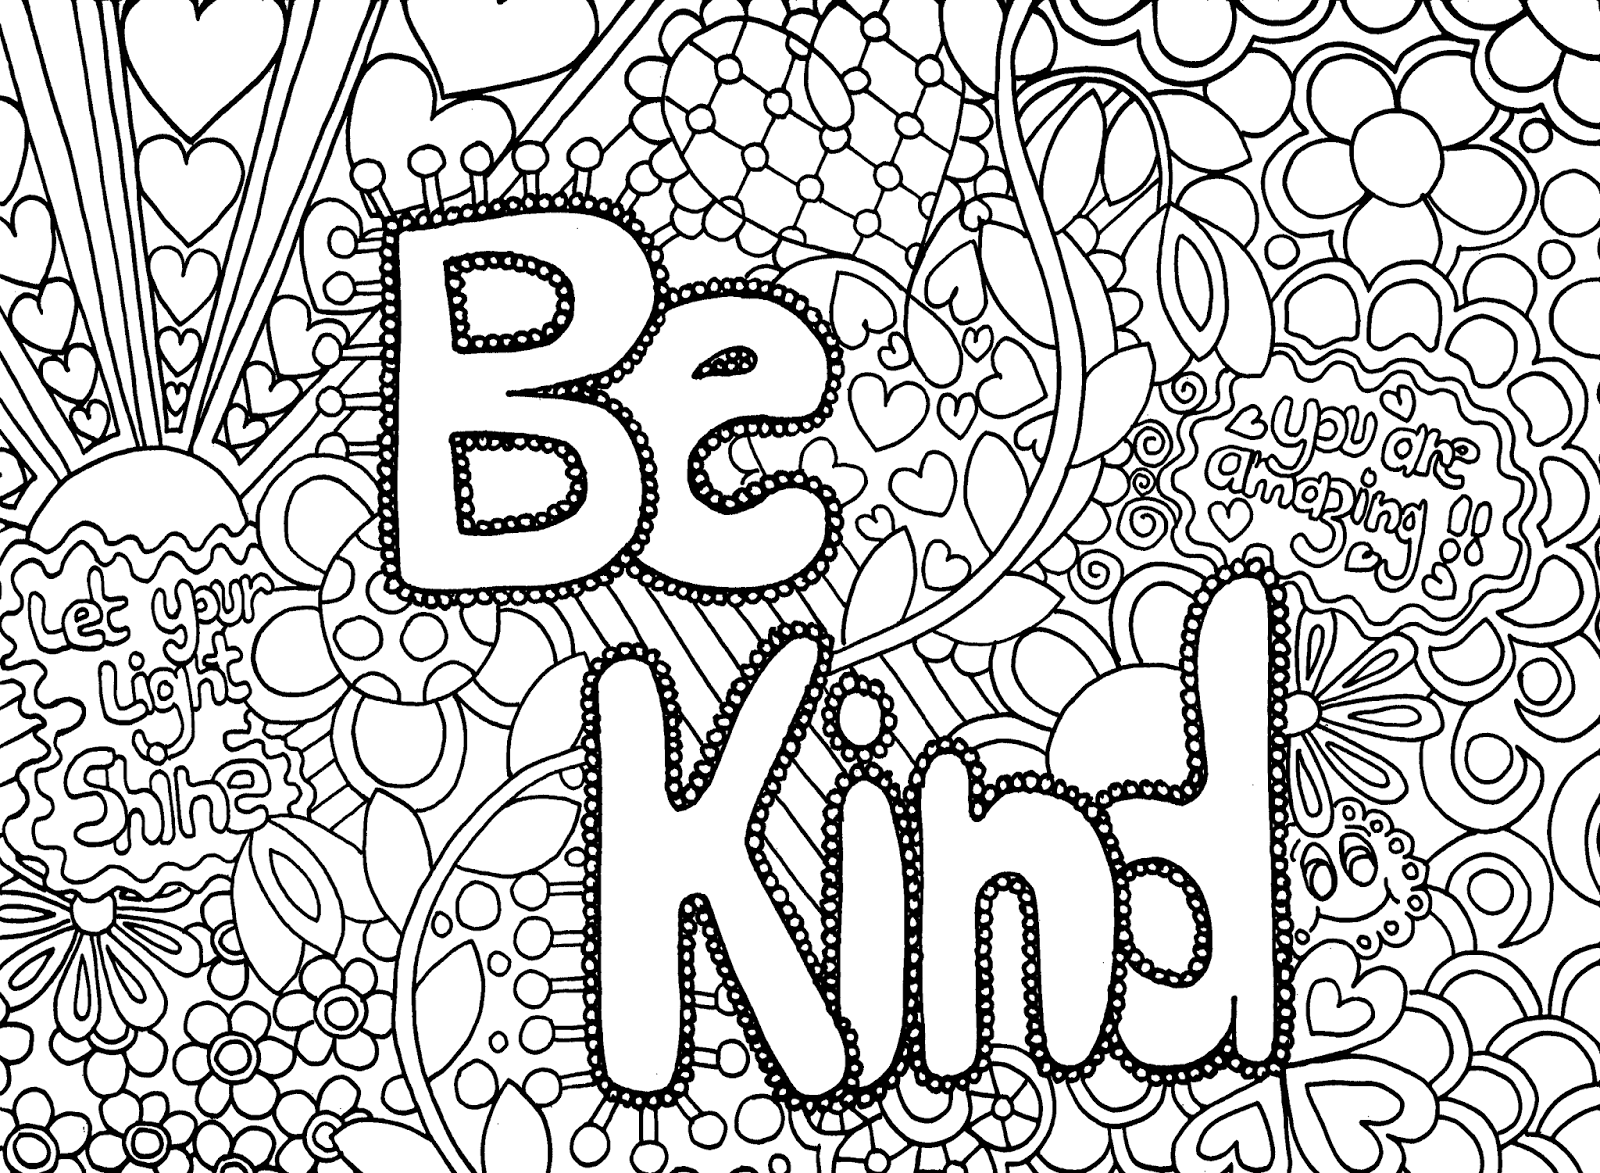 detailed coloring pages detailed coloring pages to download and print for free detailed coloring pages